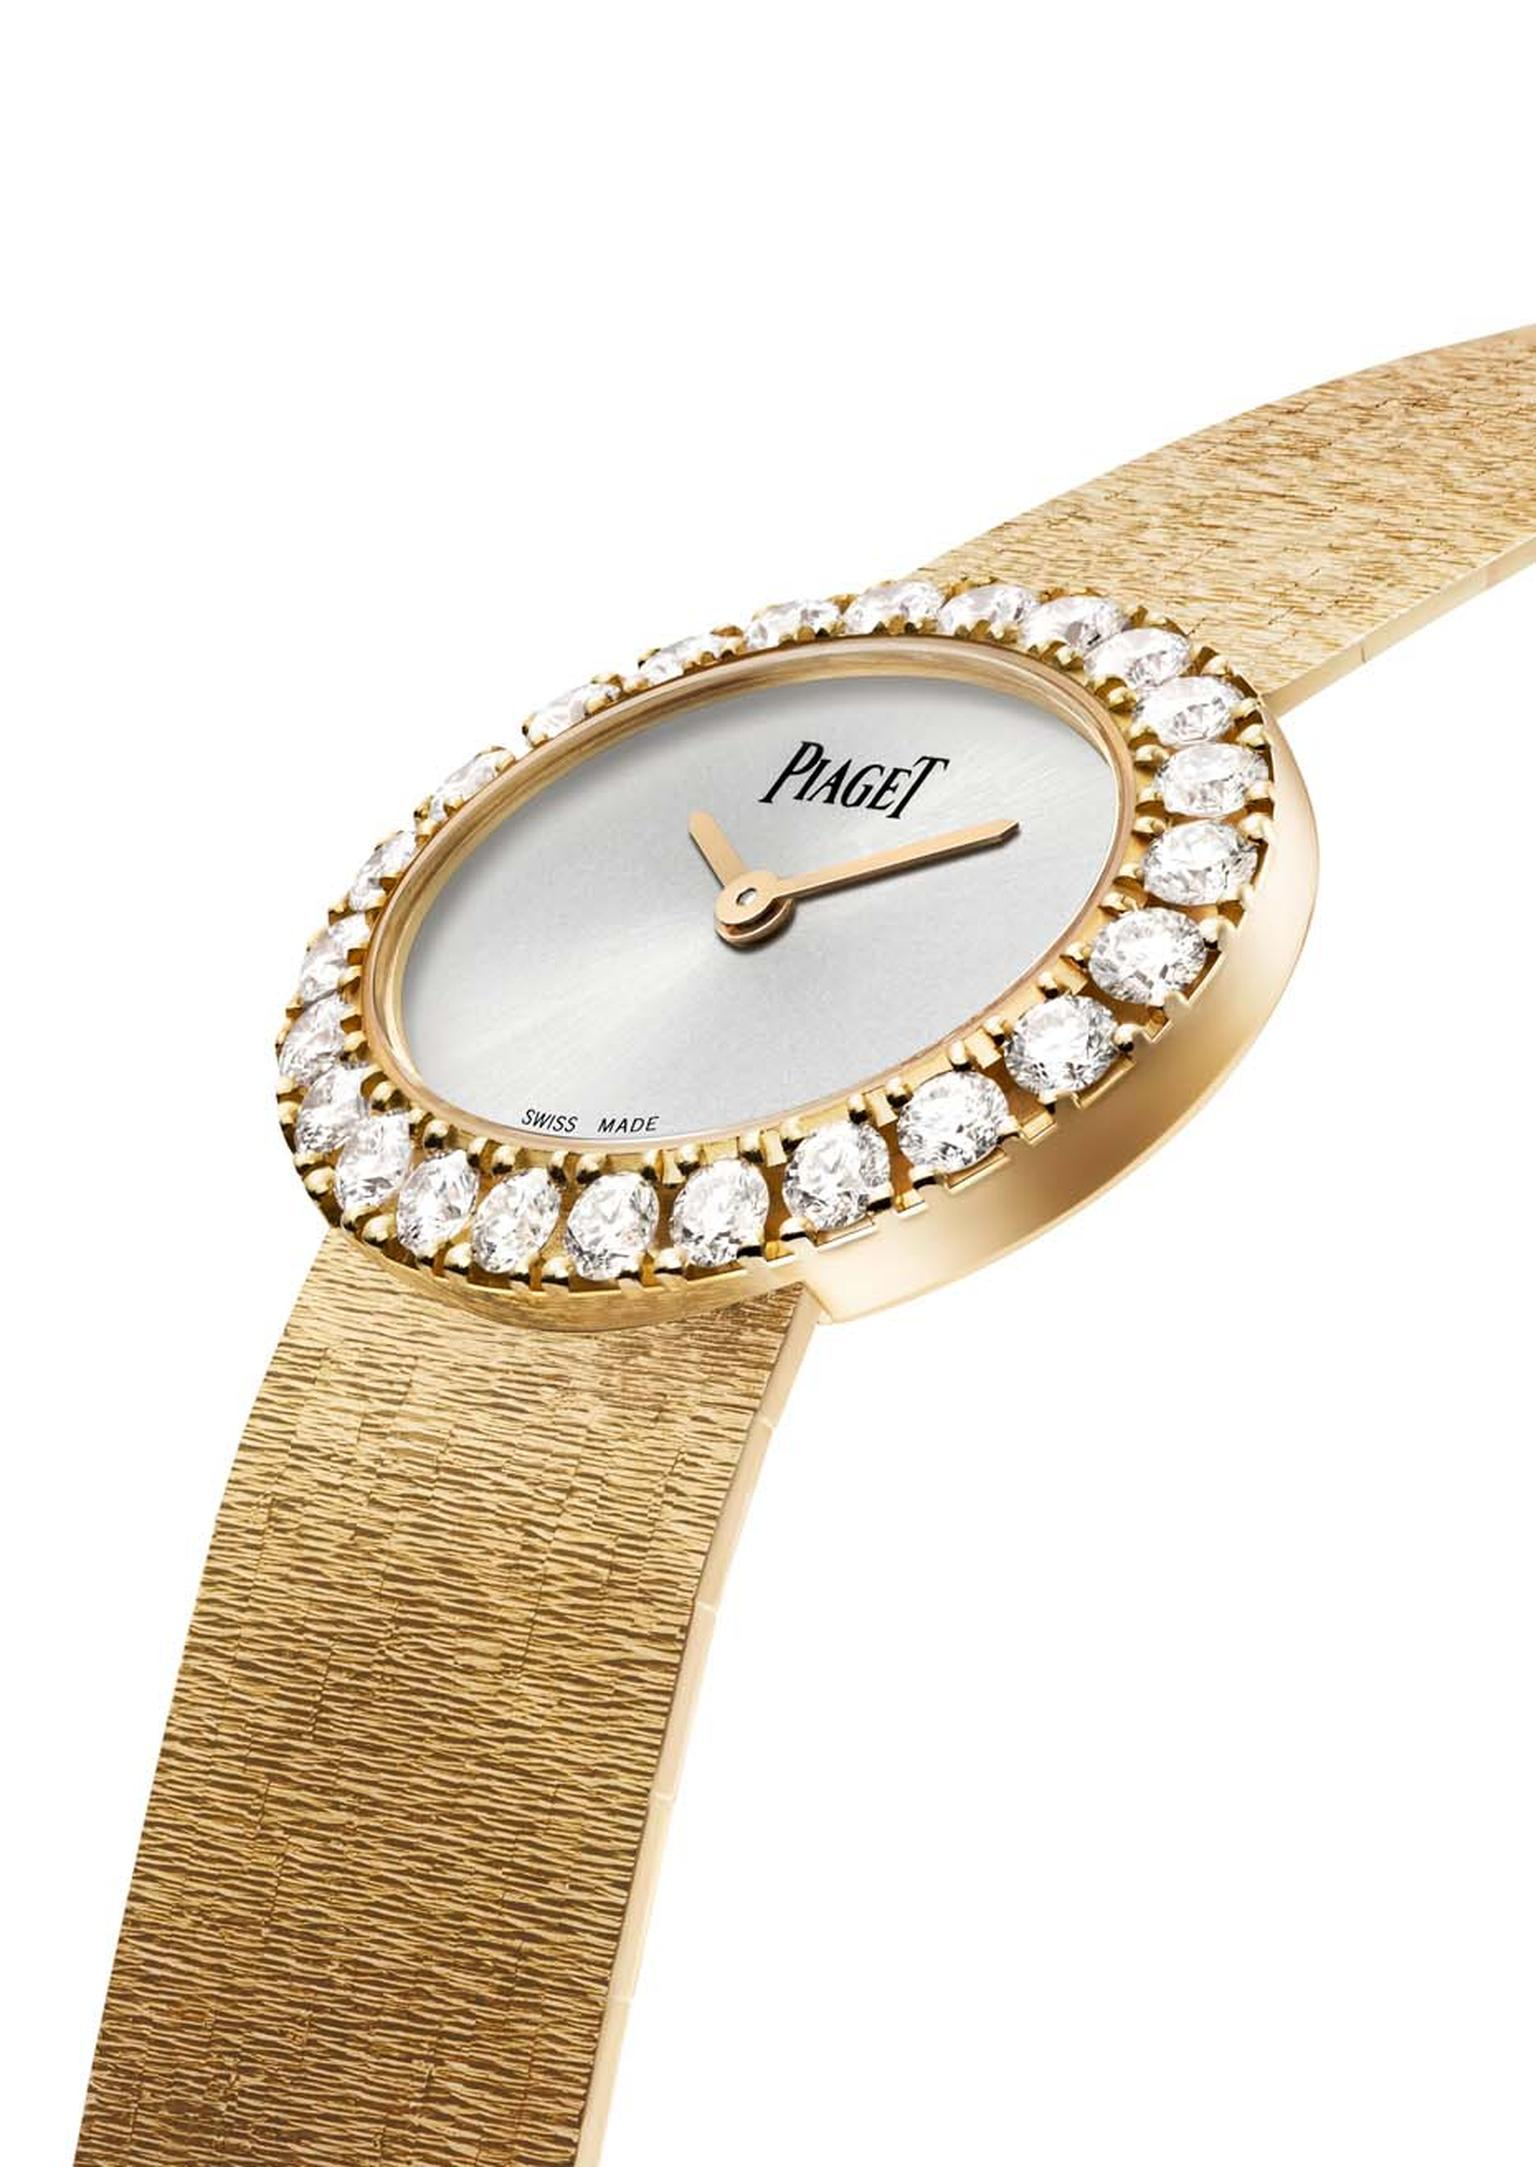 The slim case of the Piaget Traditional Oval watch gives the watch a high jewellery appeal.